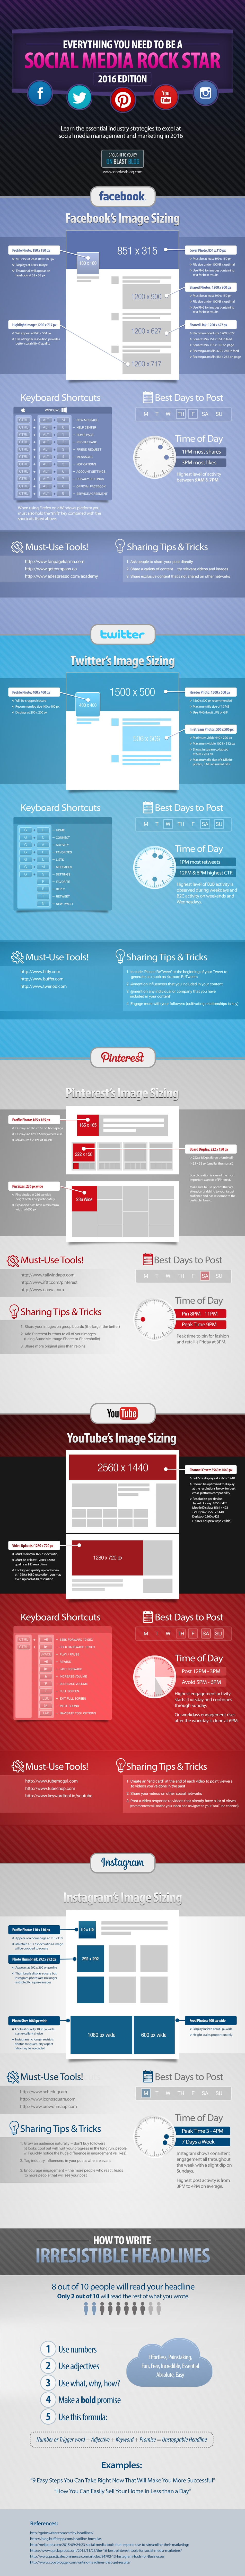 Social-Media-Image-Sizing-Cheat-Sheet-5.jpg